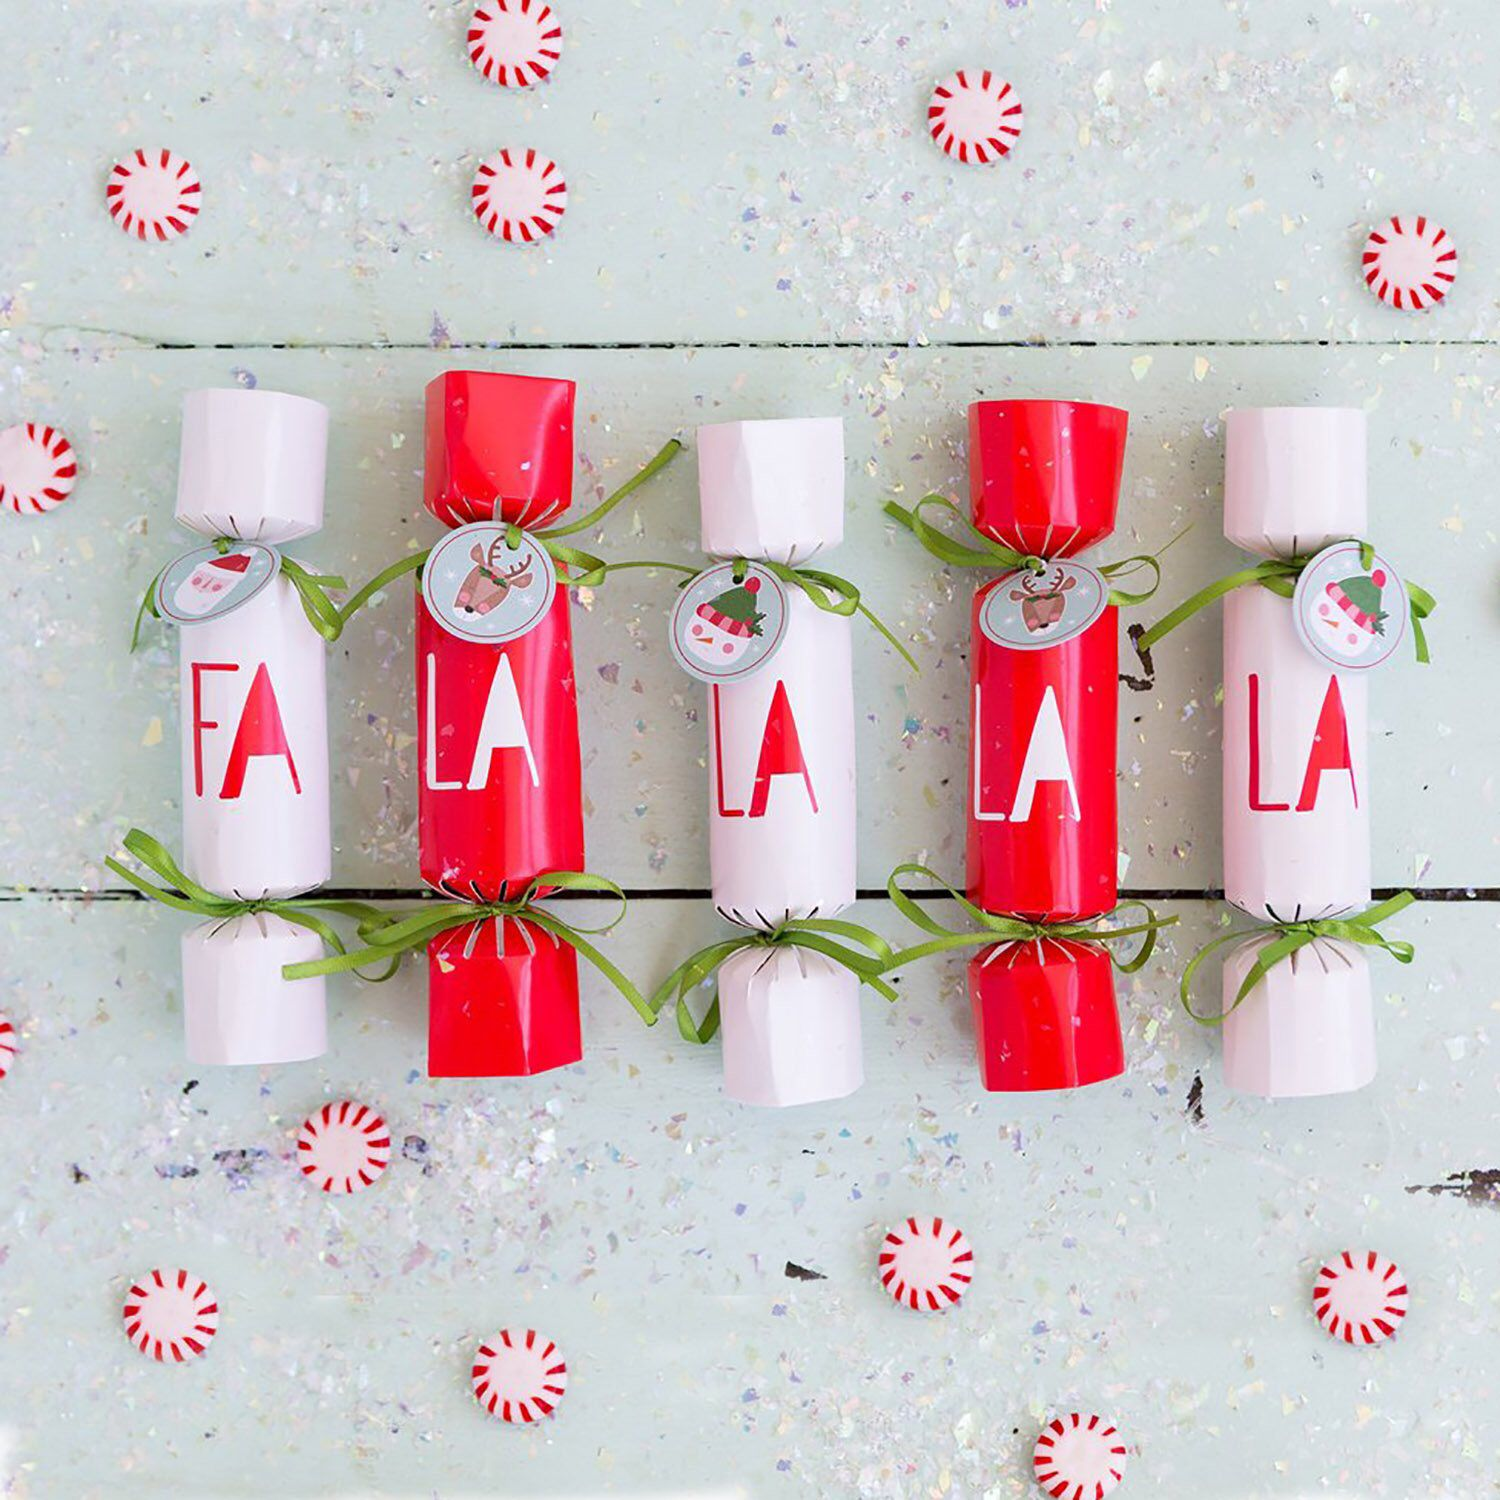 Christmas Crackers Set Of 12 Holiday Party Favors Christmas Stocking Stuffer Holiday Table Decor Christmas Party Crackers Holiday Party Favors Christmas Party Crackers Holiday Party Favors